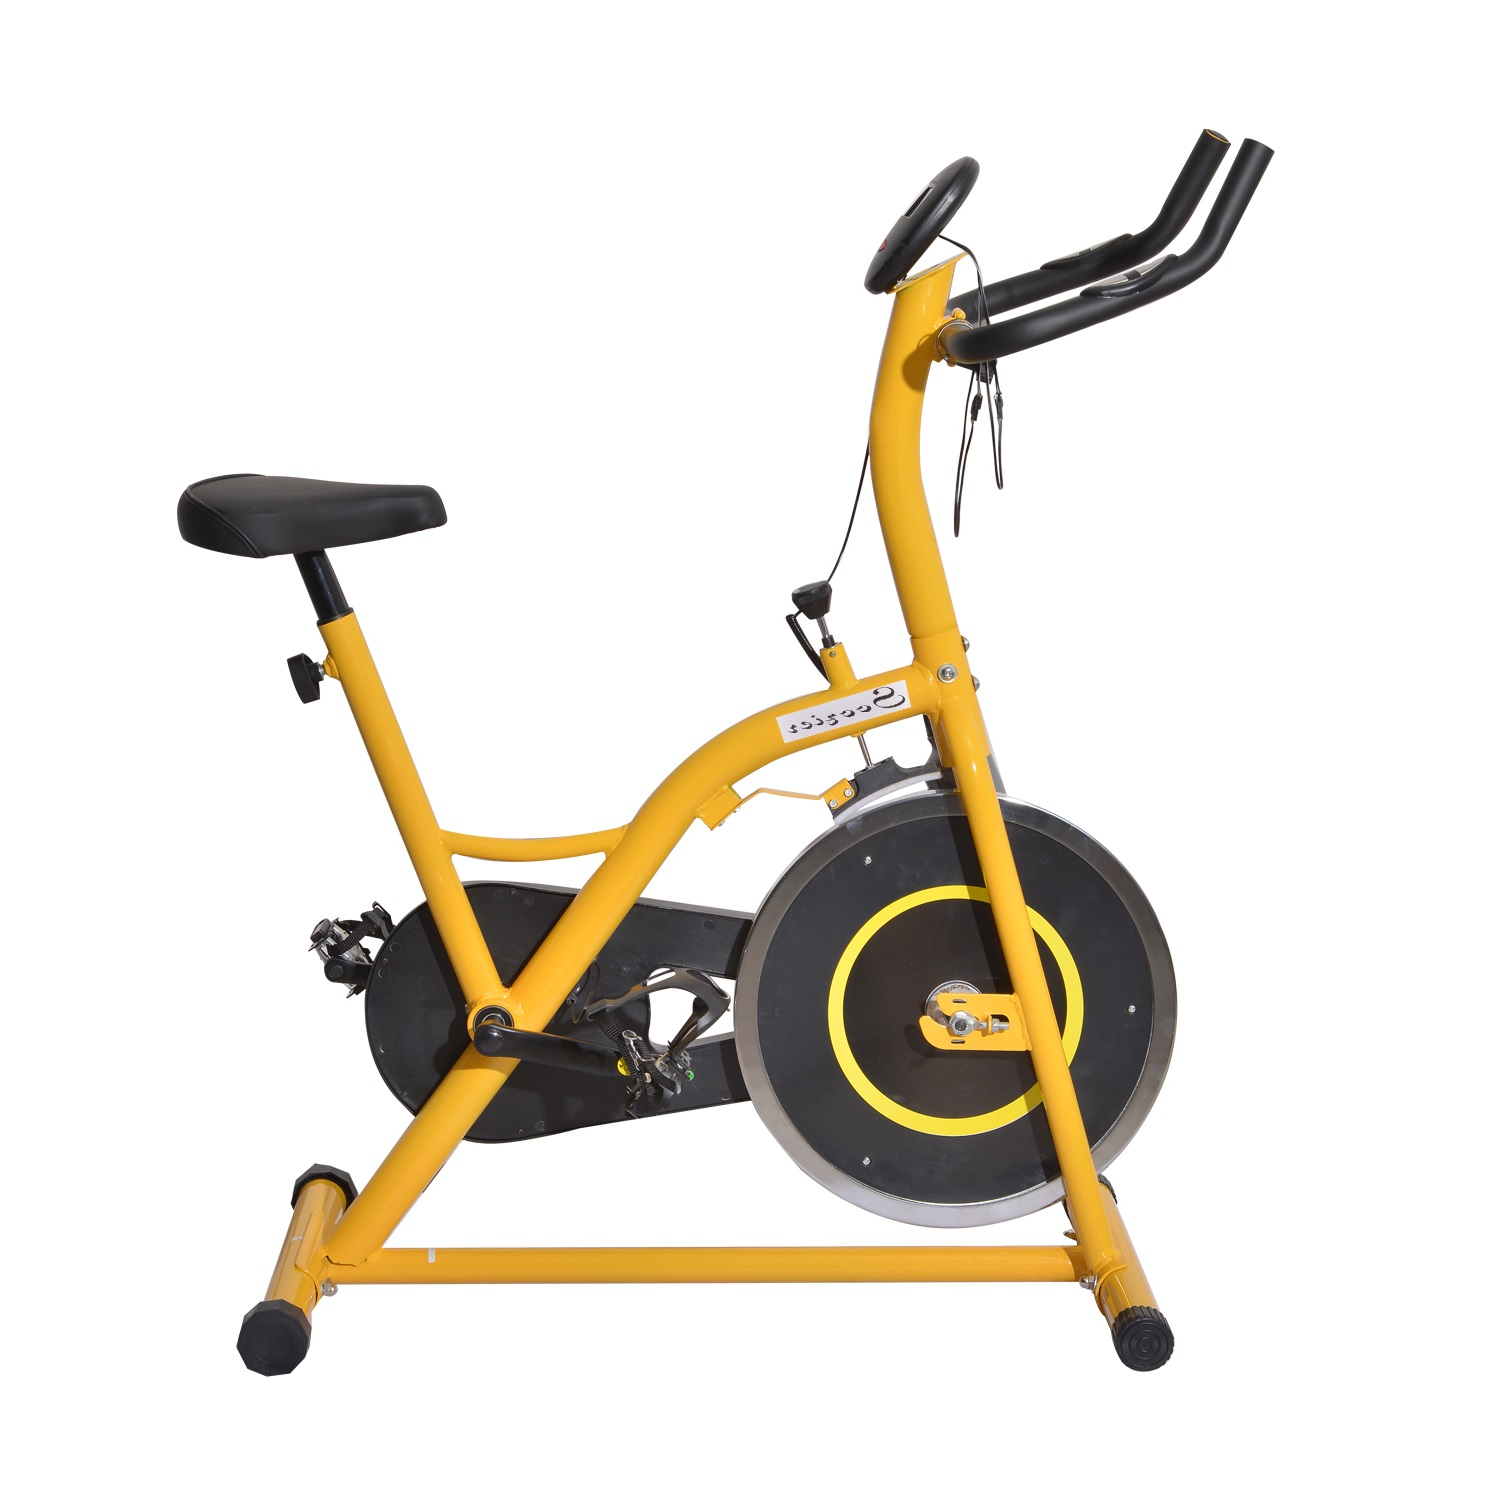 Soozier Upright Stationary Exercise Cycling Bike w/ LCD Monitor - Yellow and Black